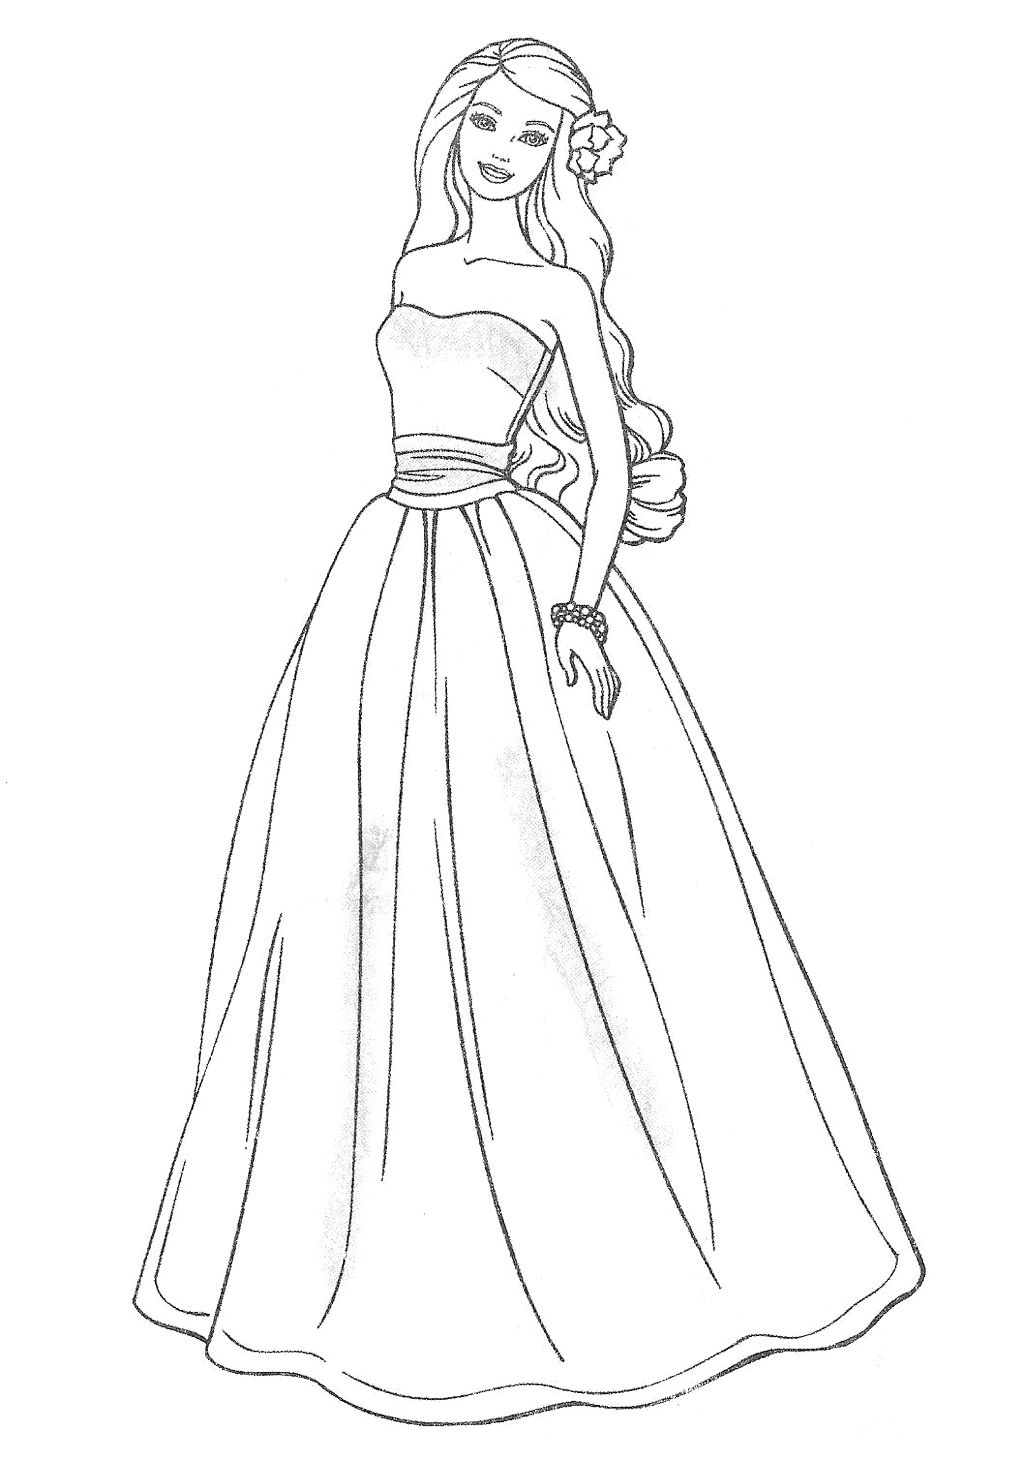 Girl in Dress Coloring Page | Ruha-mintatervezés rajzra ...